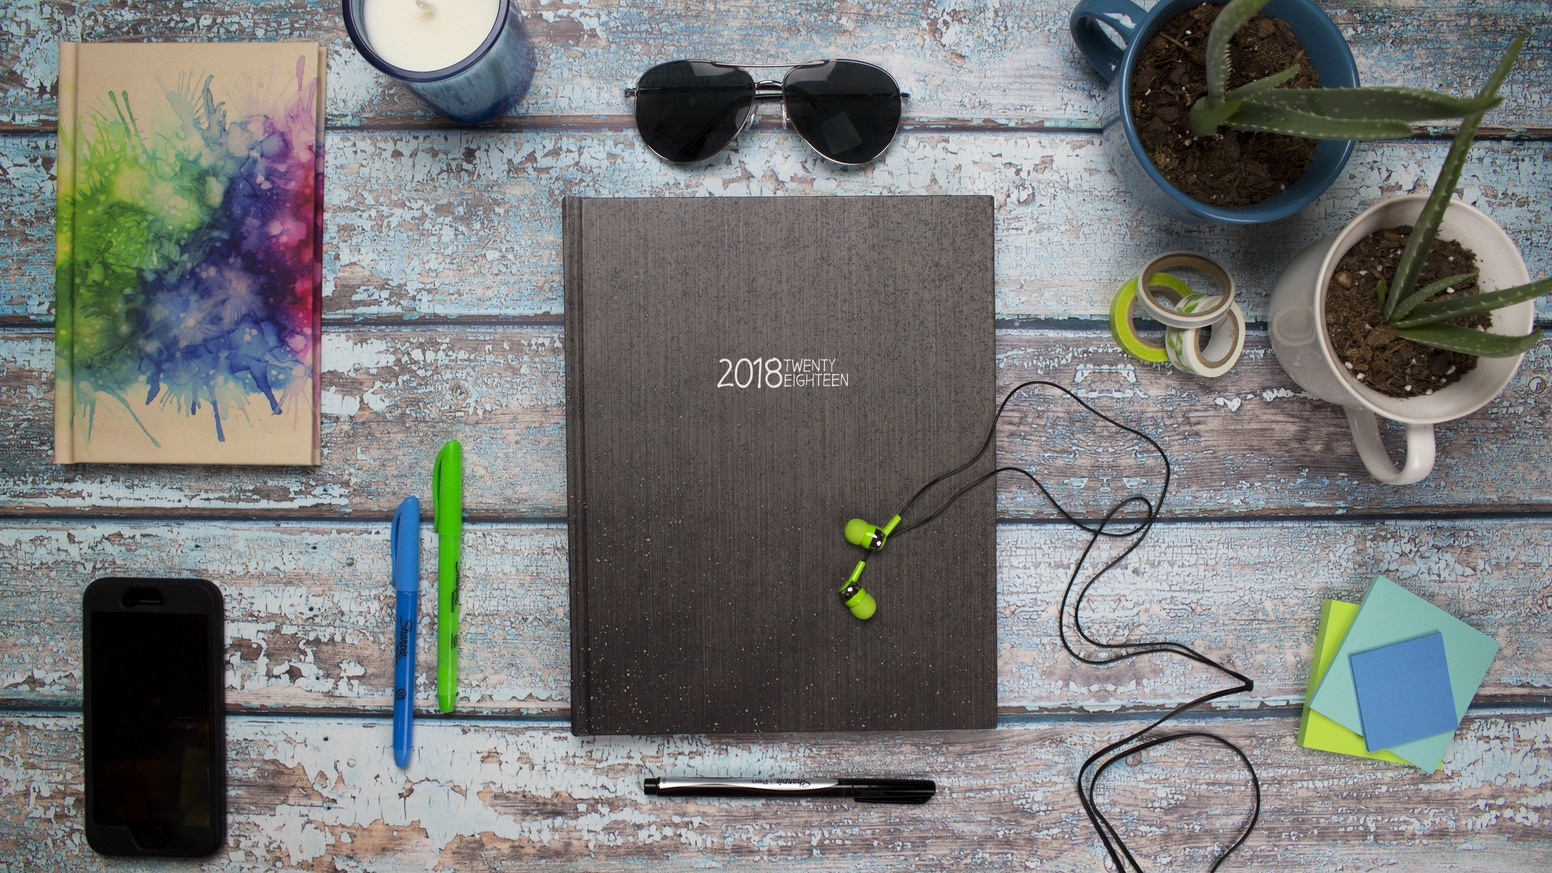 18 day campaign featuring Wright Planner's 2018 book planners with waterproof hardcovers.  Ten 8x10 designs plus the new 5x8 version!